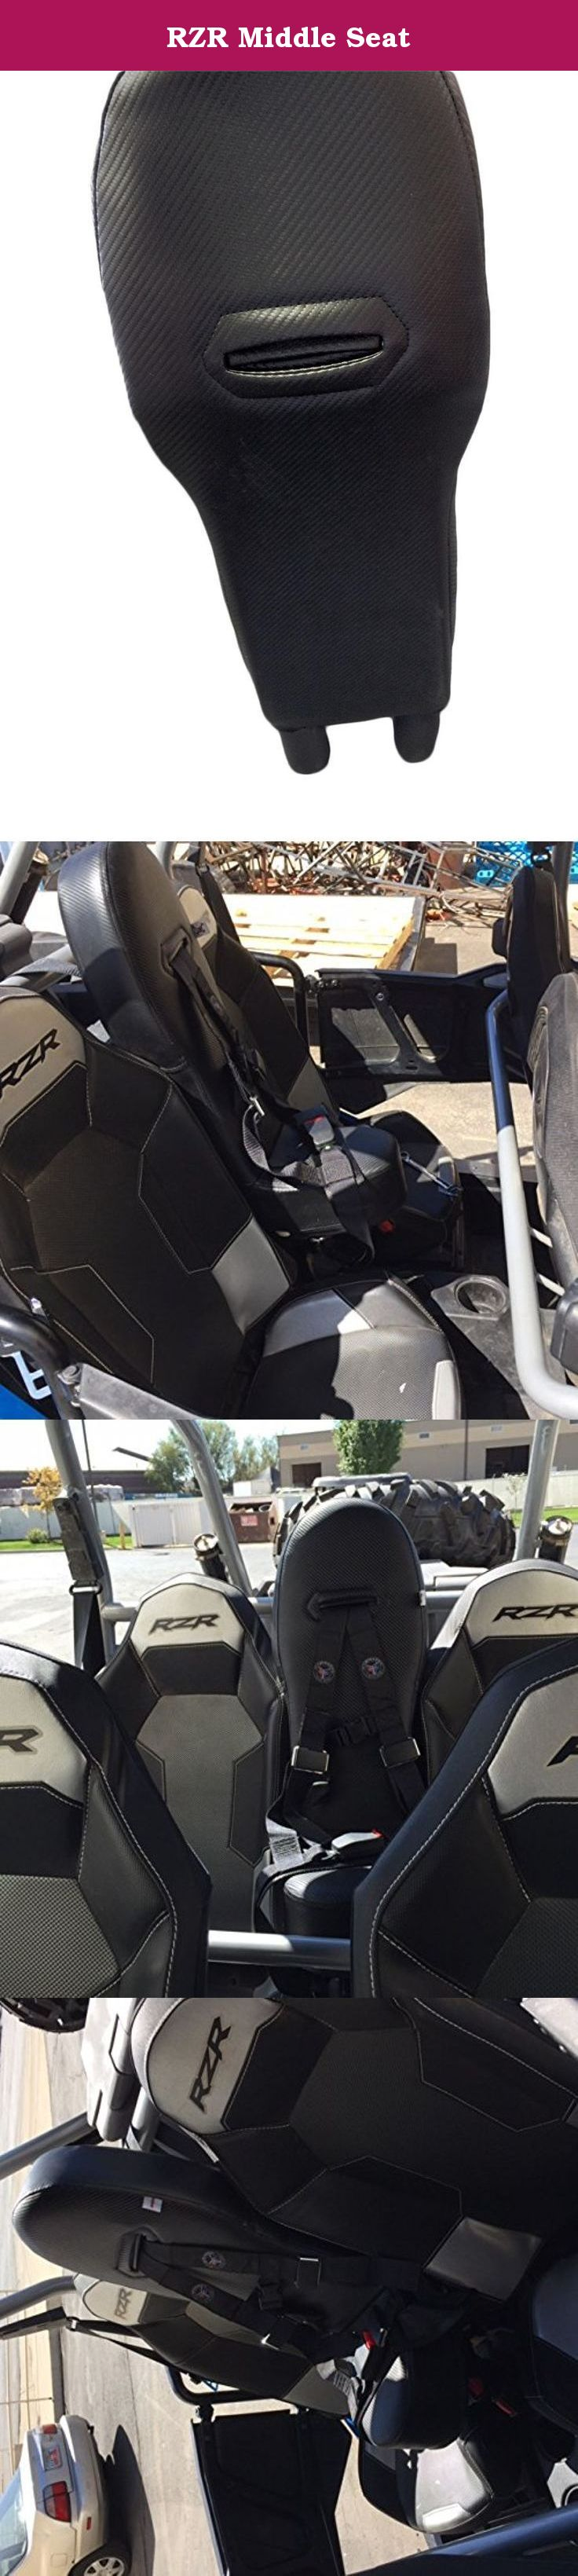 RZR Middle Seat 14 15 1000